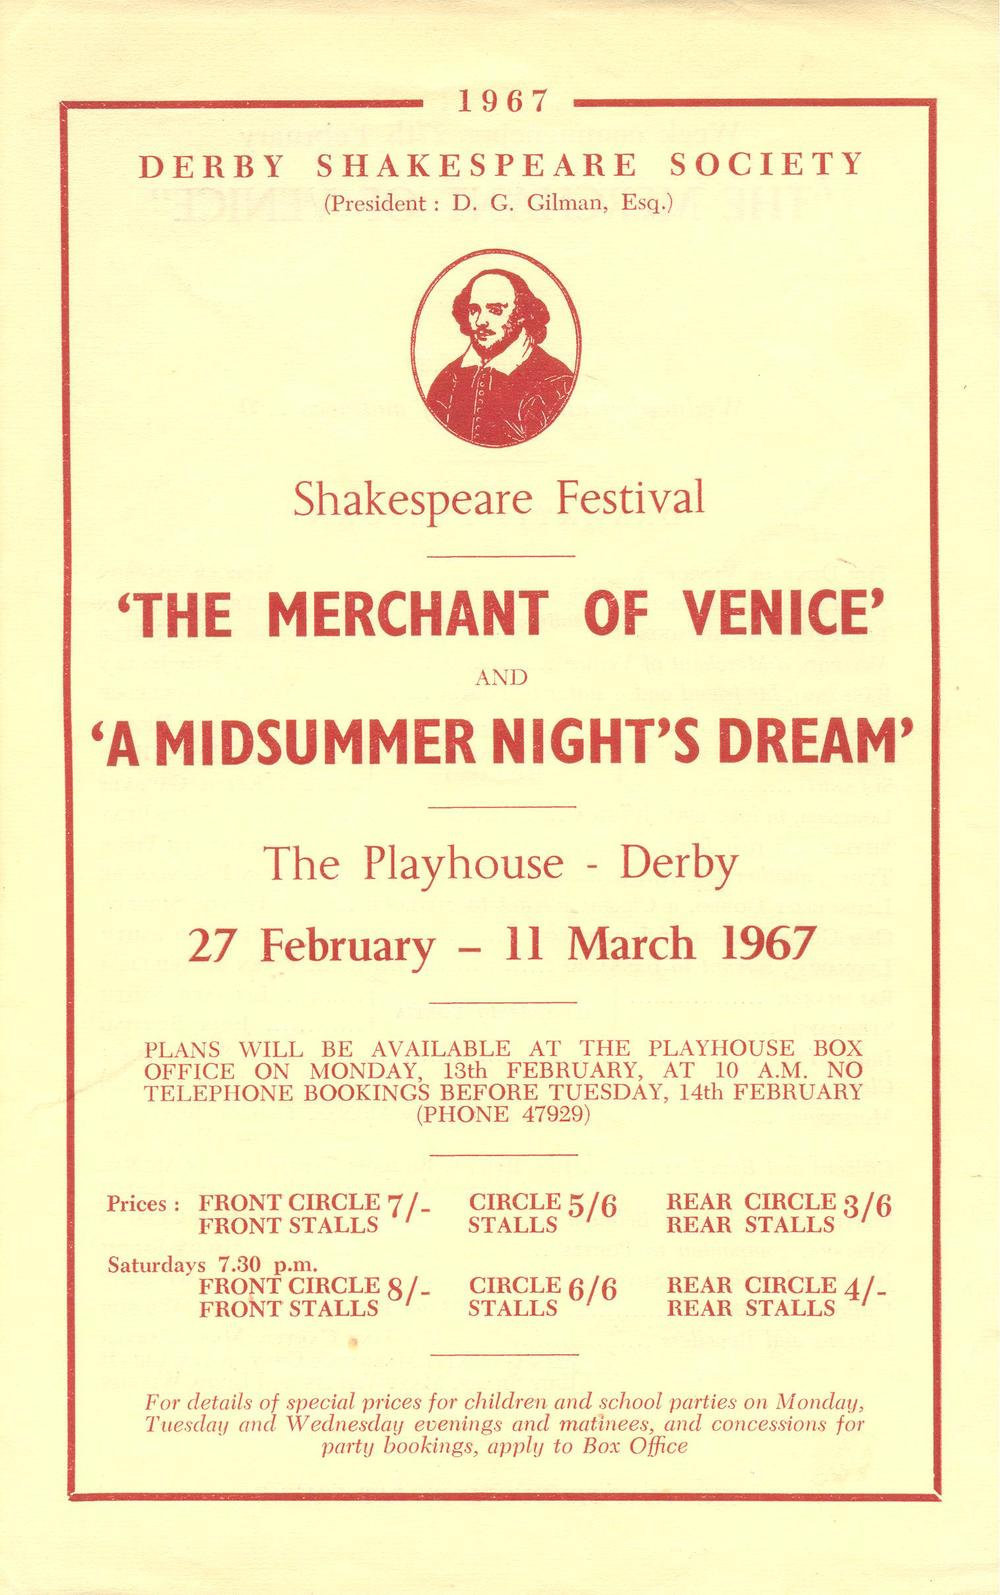 'The Merchant Of Venice' & 'A Midsummer Night's Dream' 1967